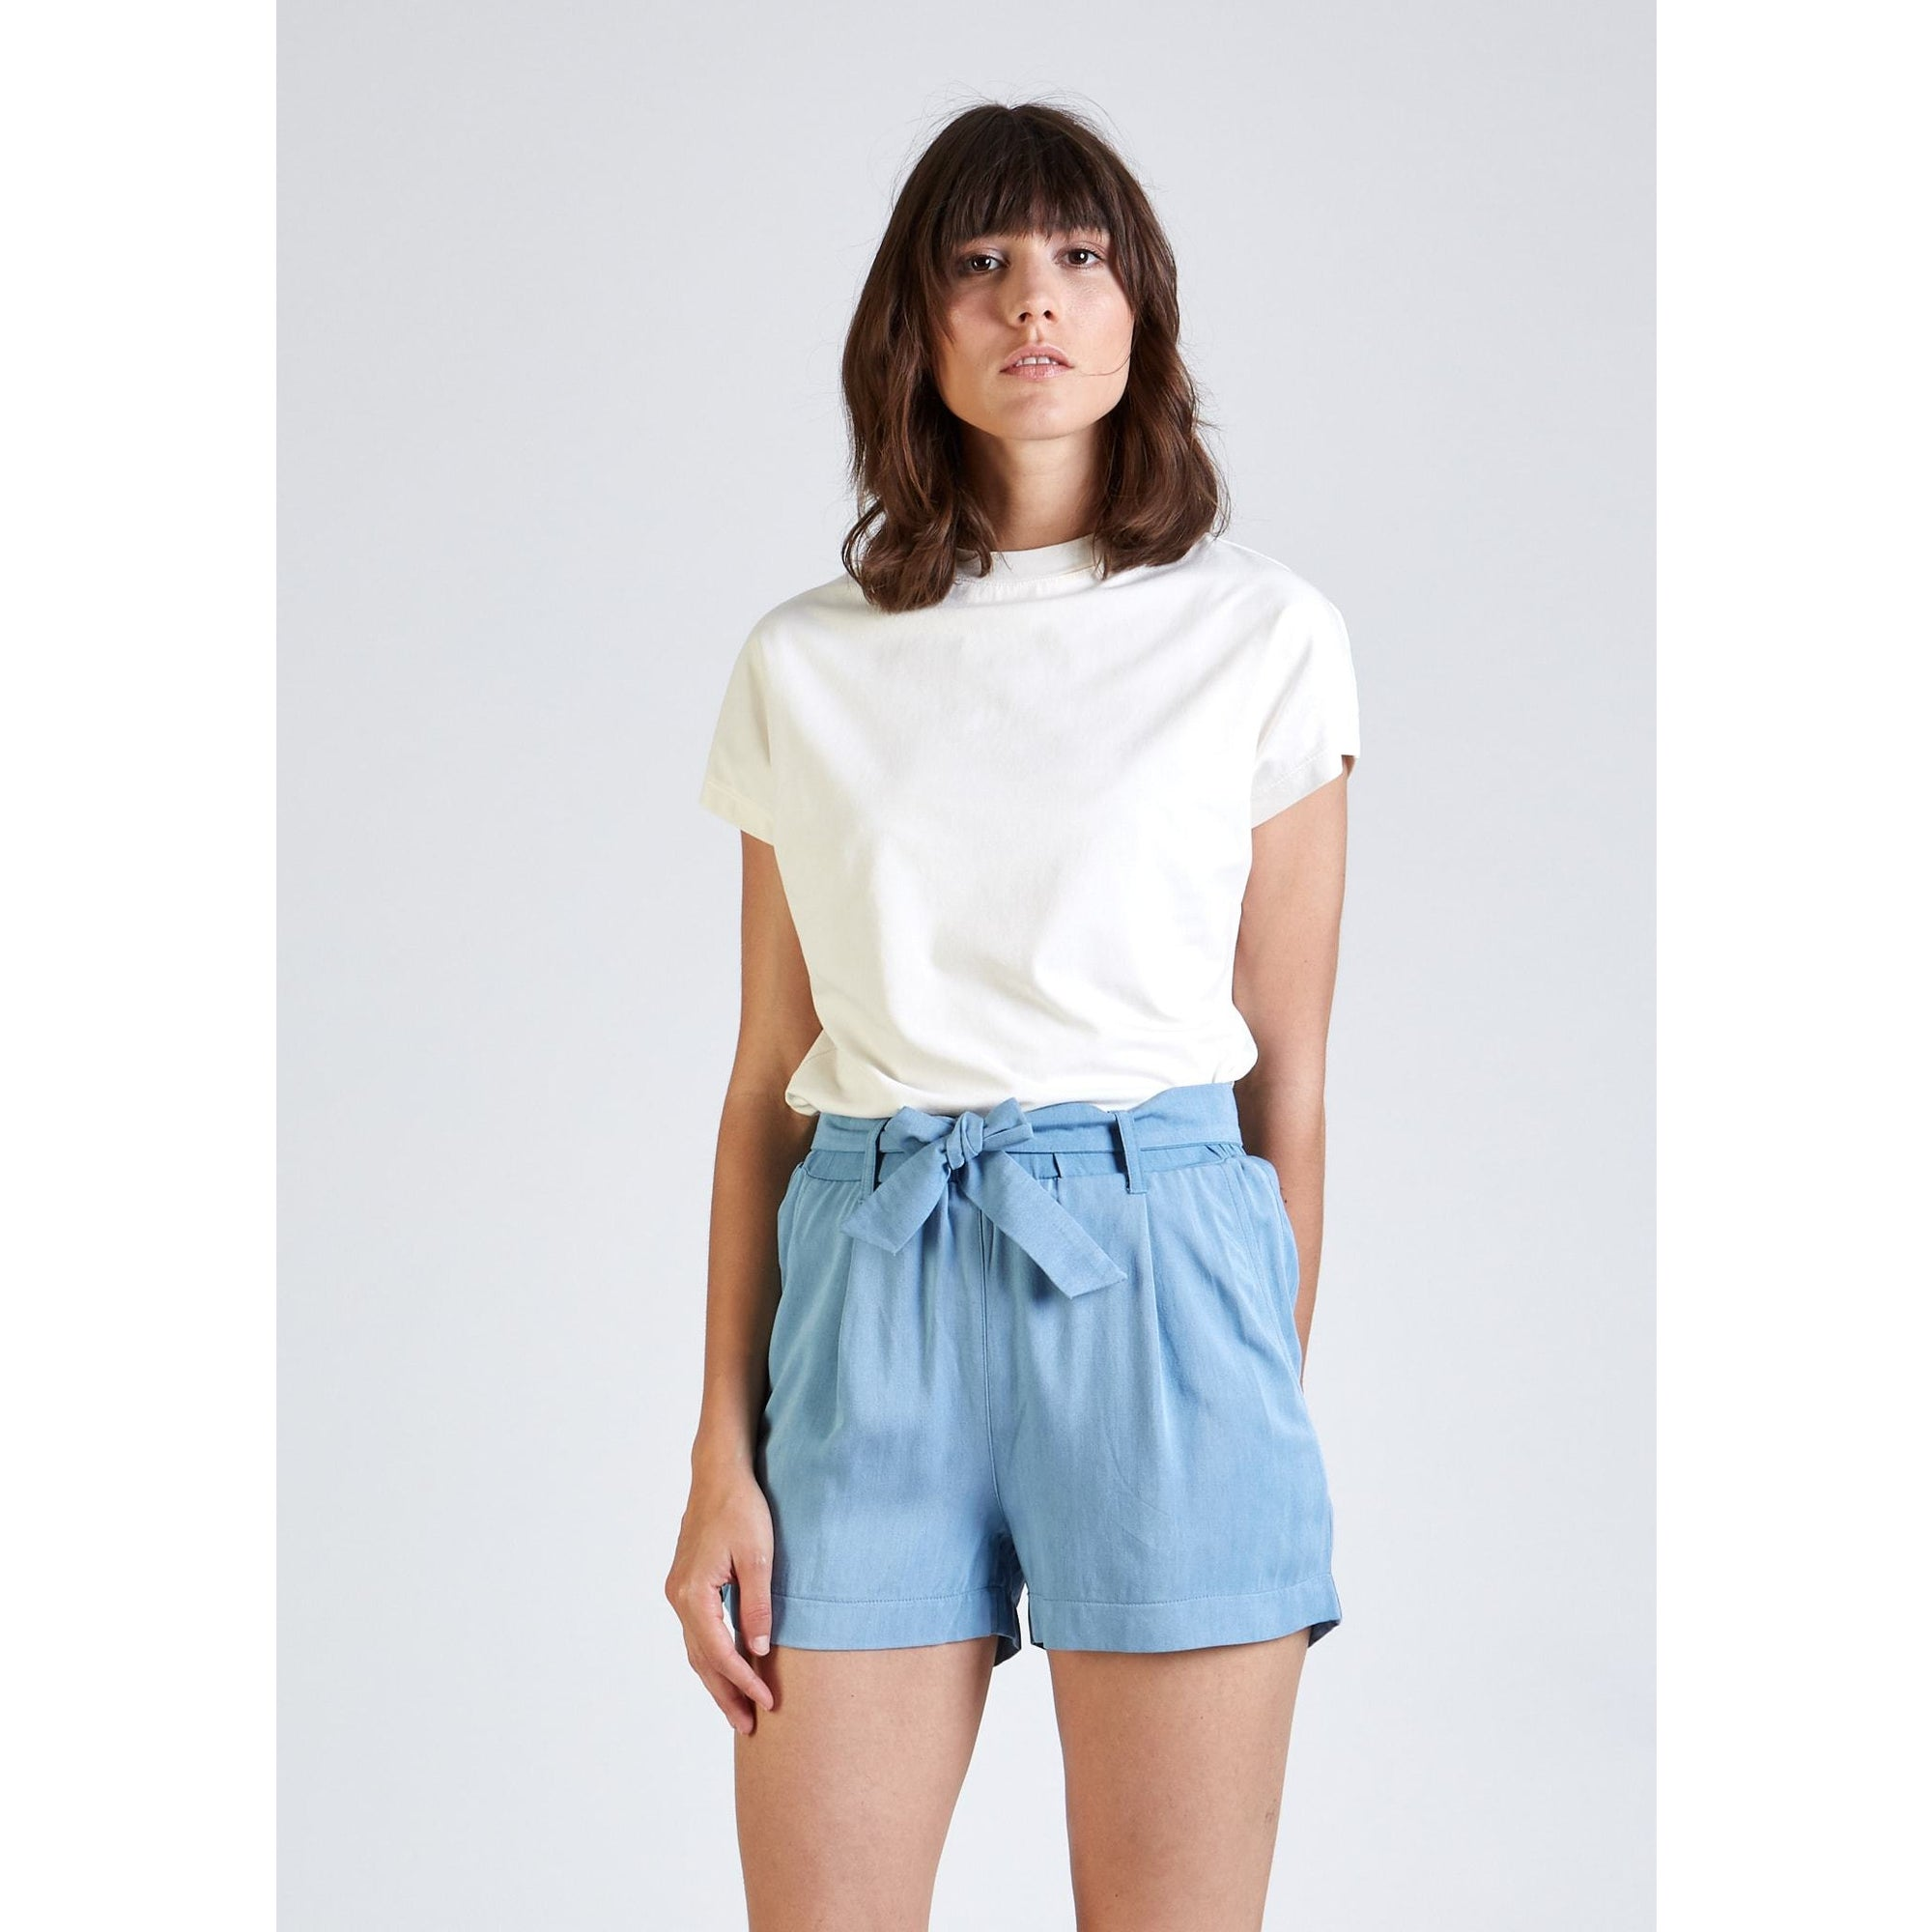 Shorts Jessica - light blue